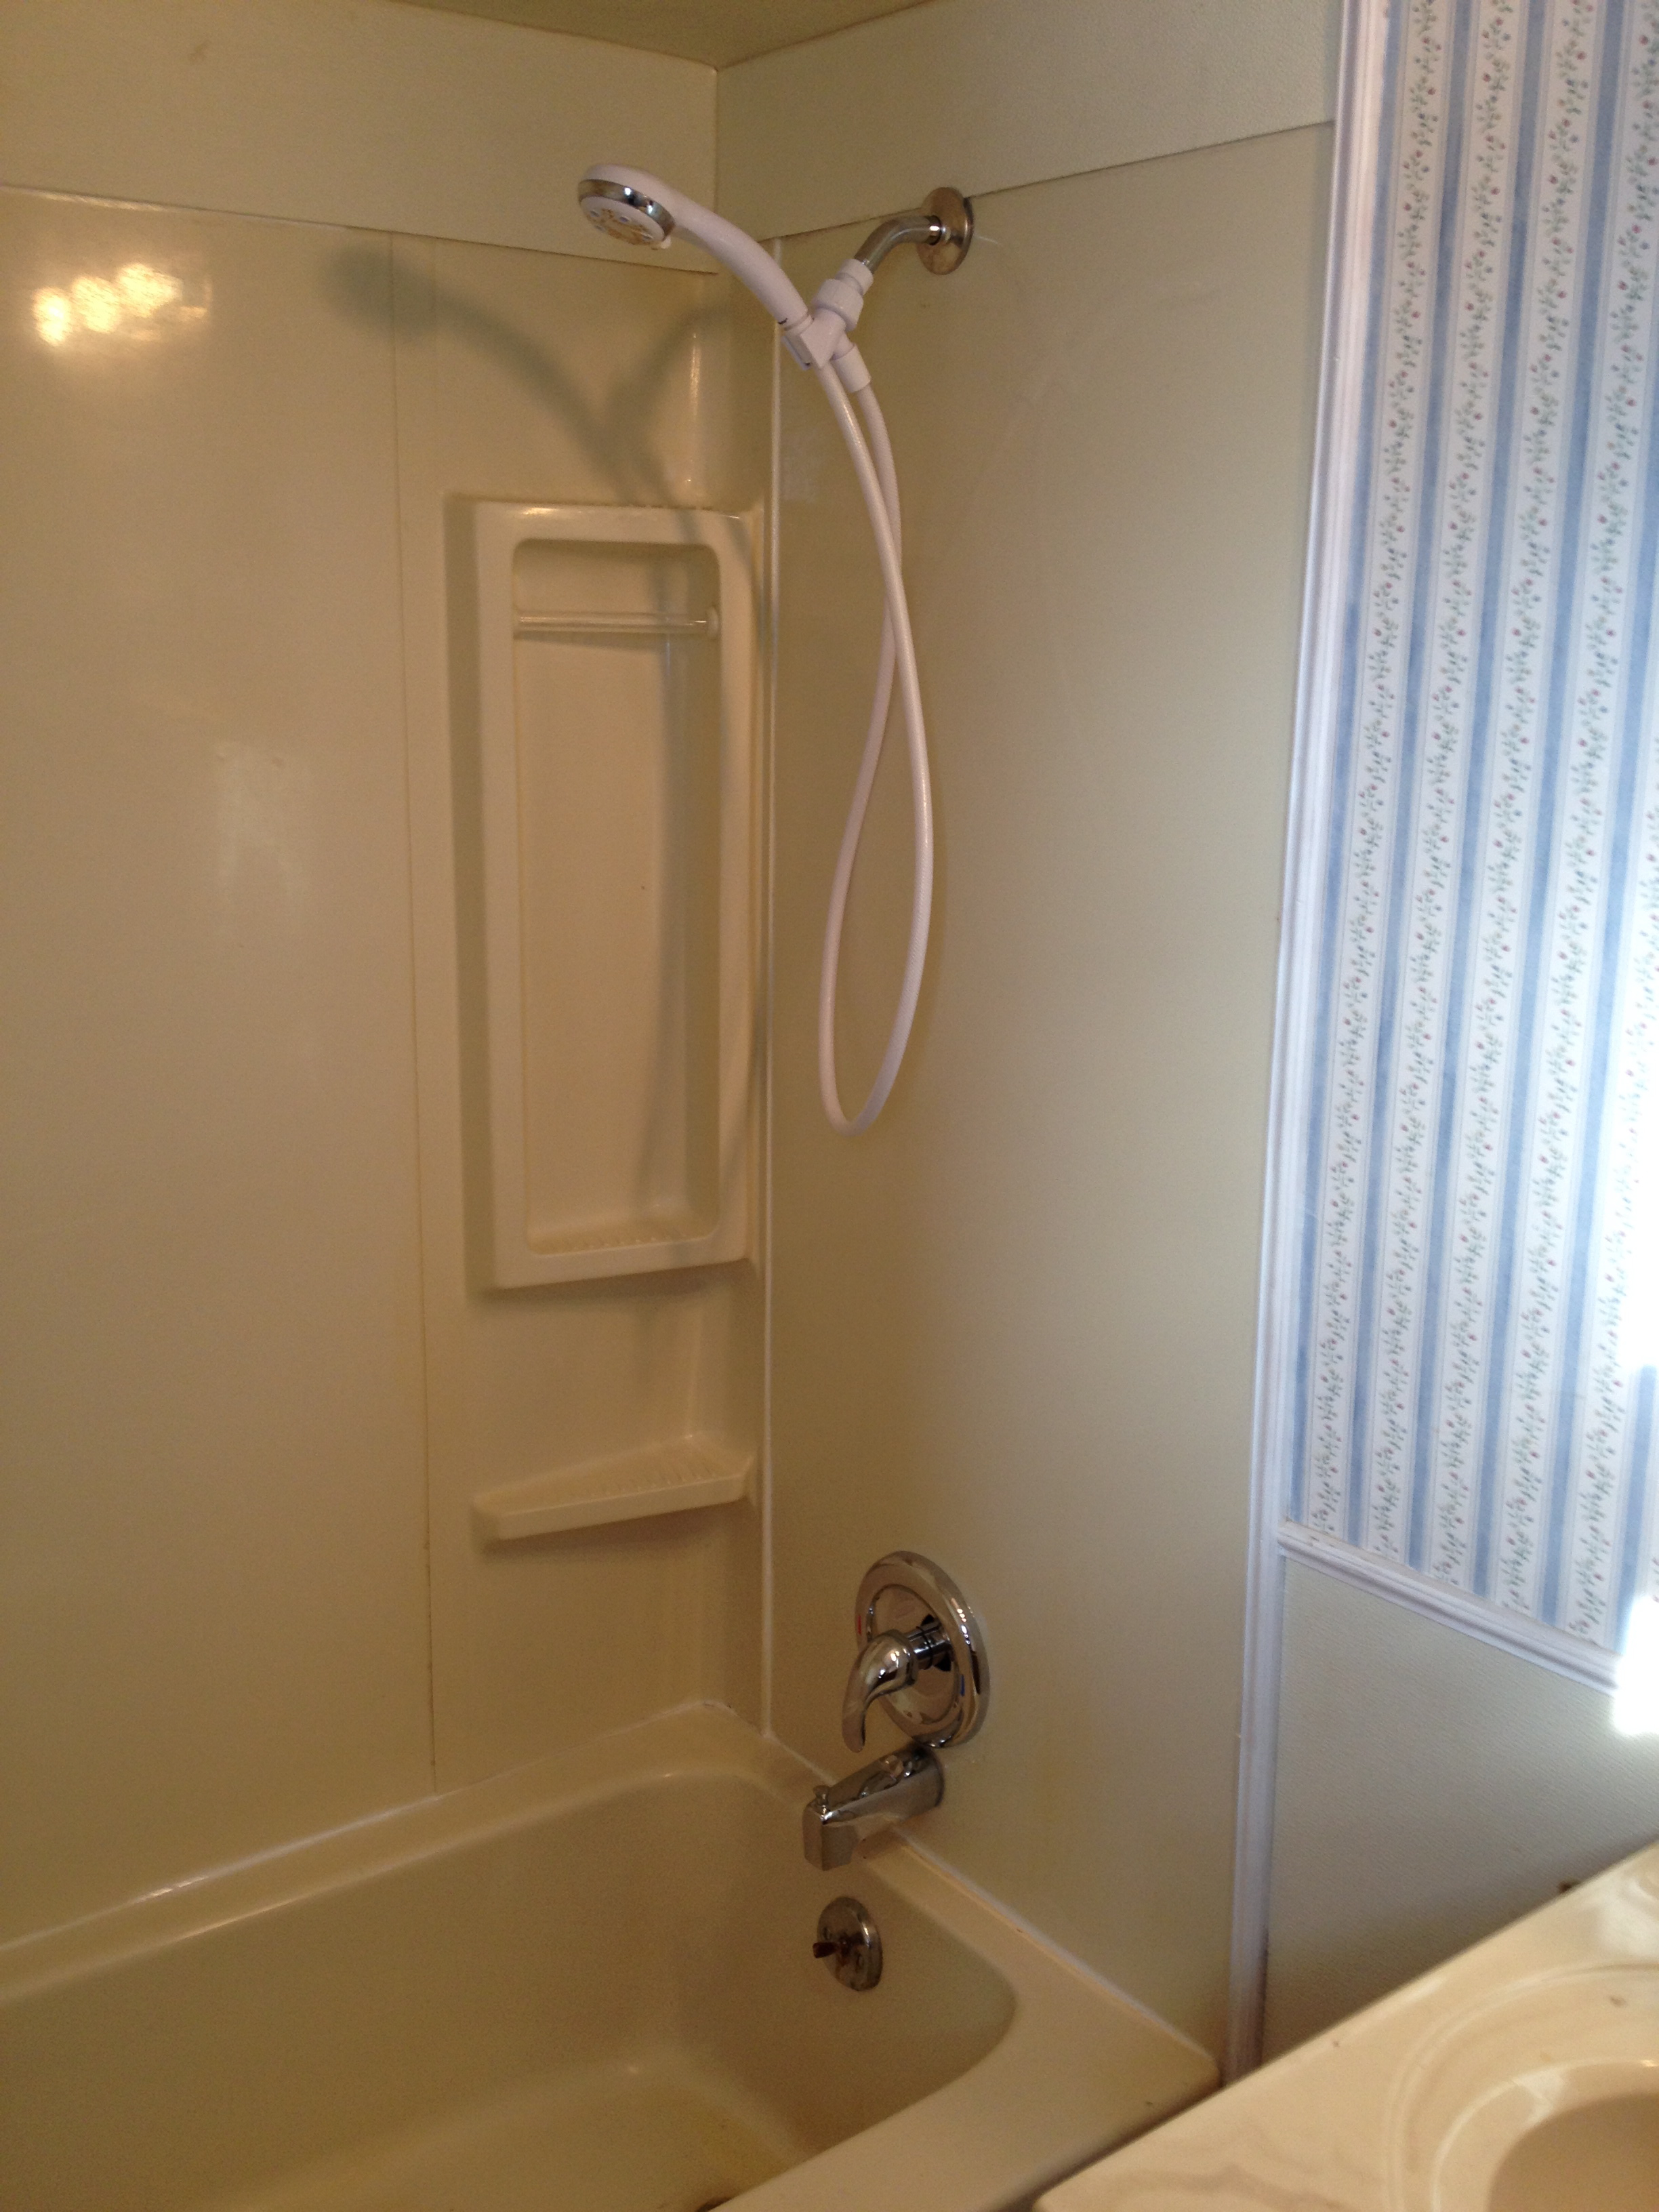 Bathtub Faucet Spout Replacement Edgerton Ohio